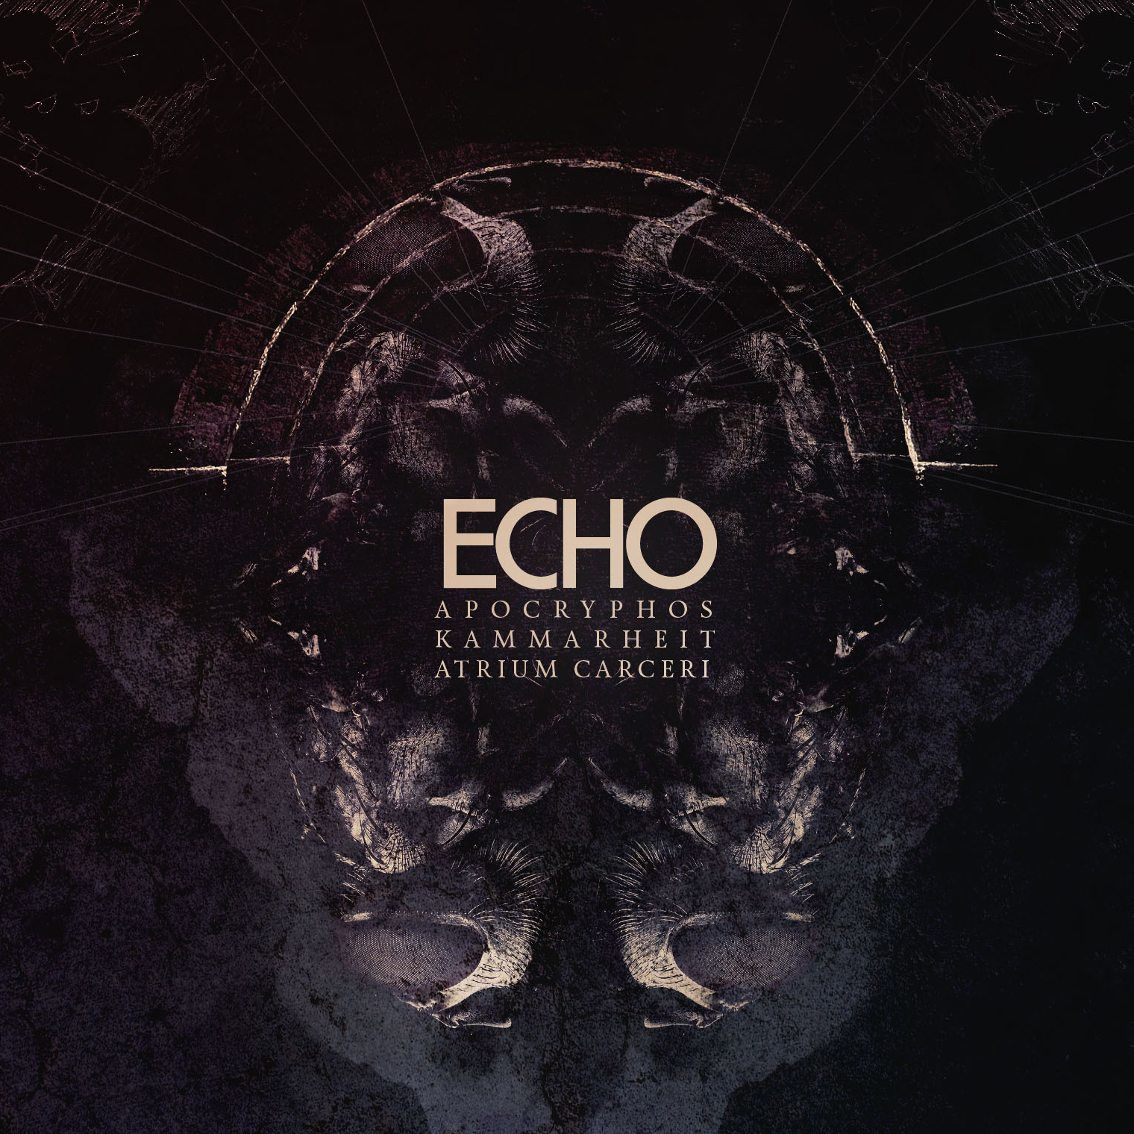 Apocryphos, Kammarheit, Atrium Carceri reunite for'Echo' album - listen to first 2 tracks !